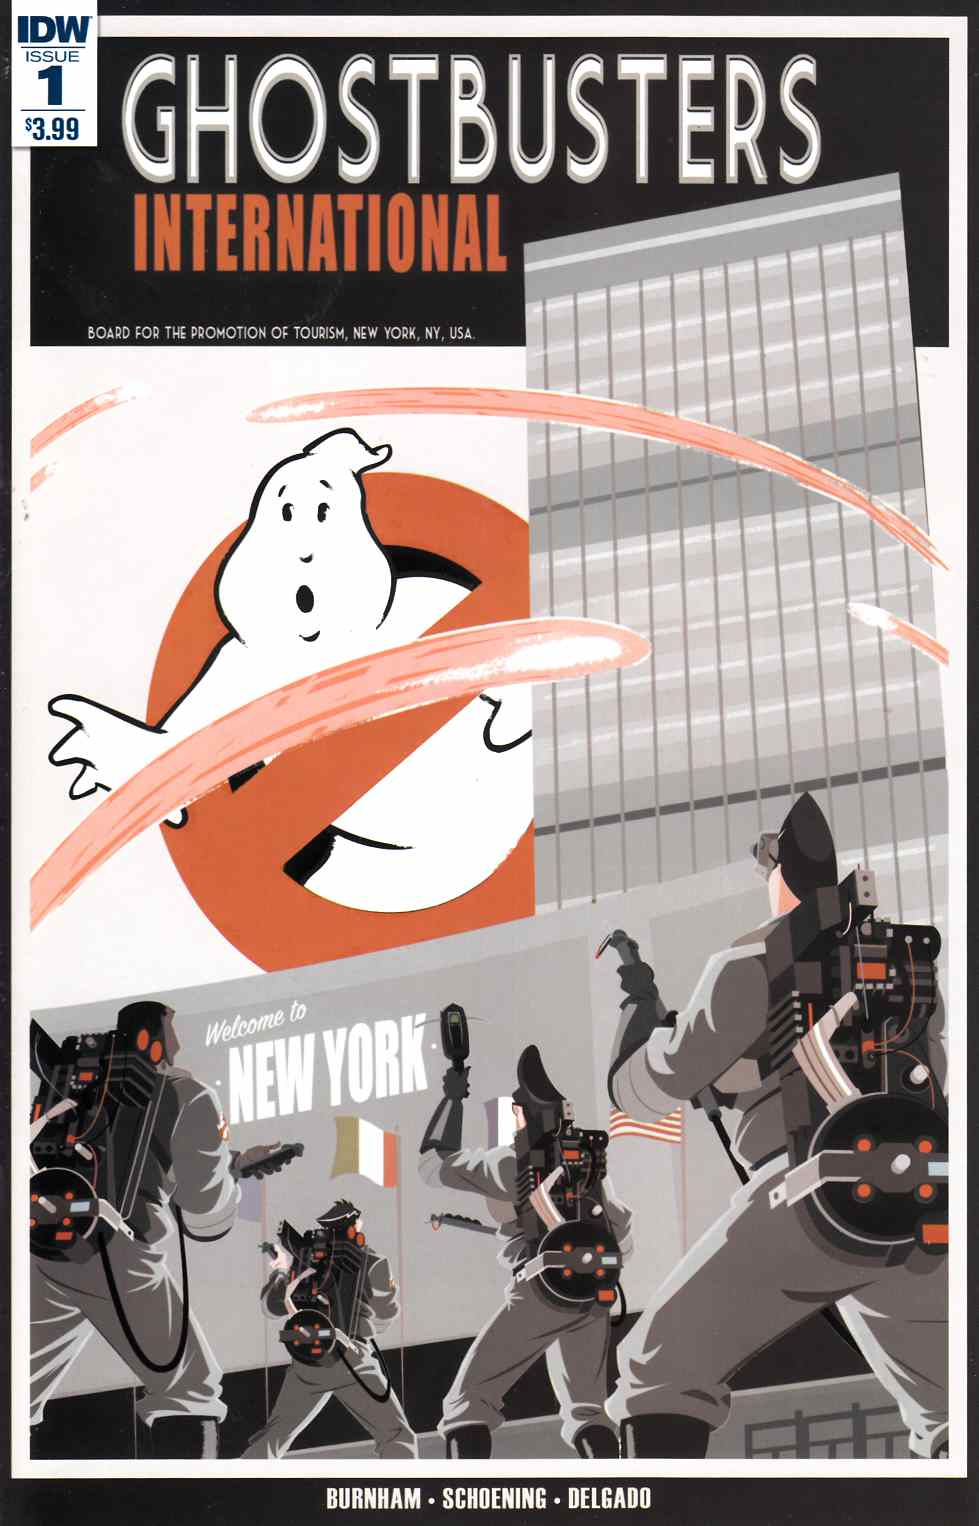 Ghostbusters International #1 [IDW Comic] THUMBNAIL